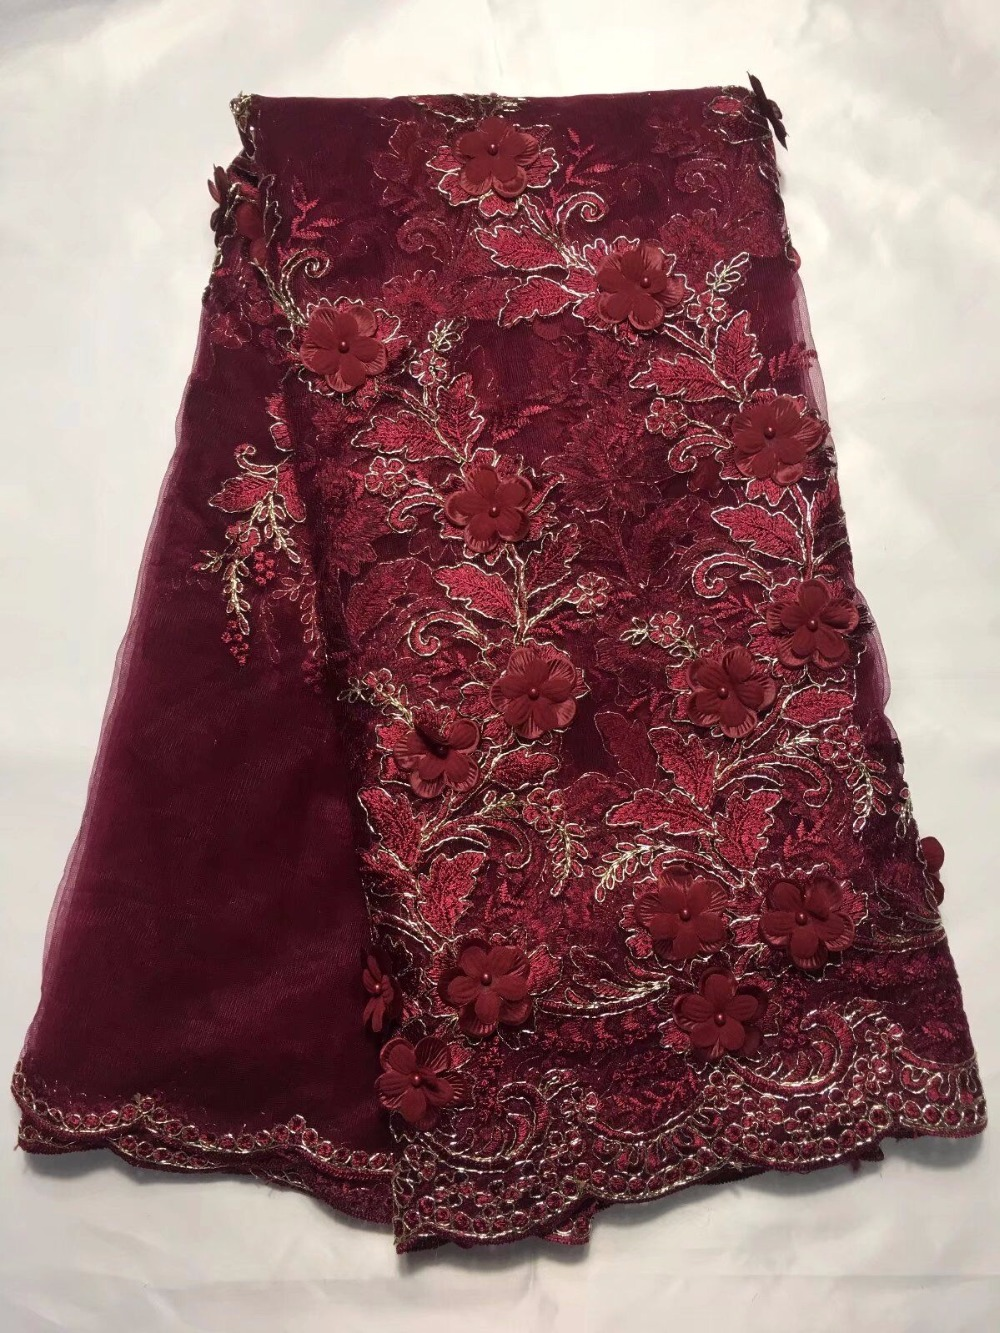 Laces Fabric Embroidered Nigerian Hojilou Panic Buying High Quality Lace Fabric Panic Buying African Lace With beads Wine red